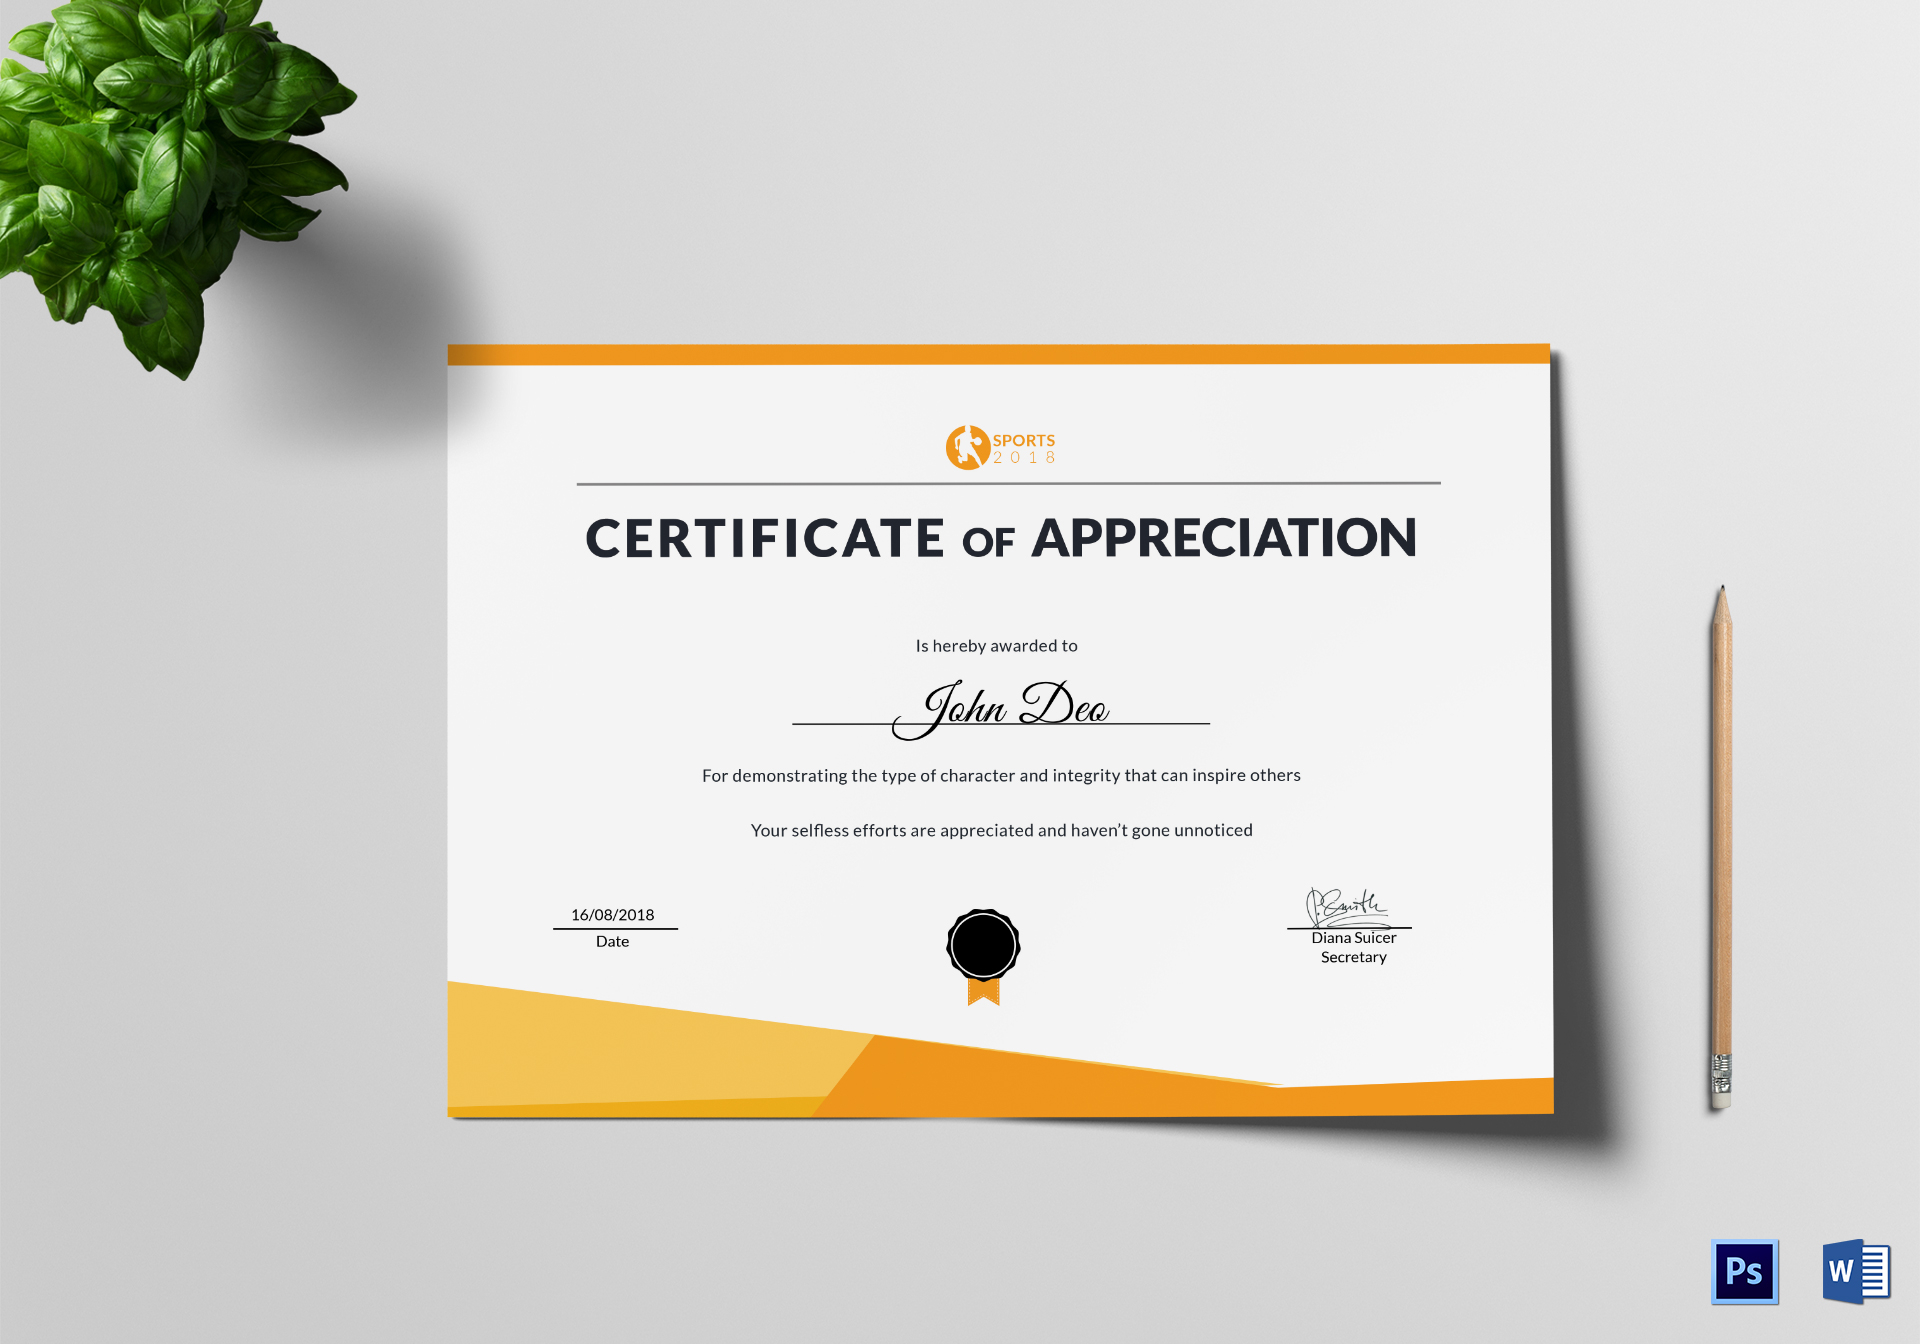 Sportsmanship Appreciation Certificate Design Template In